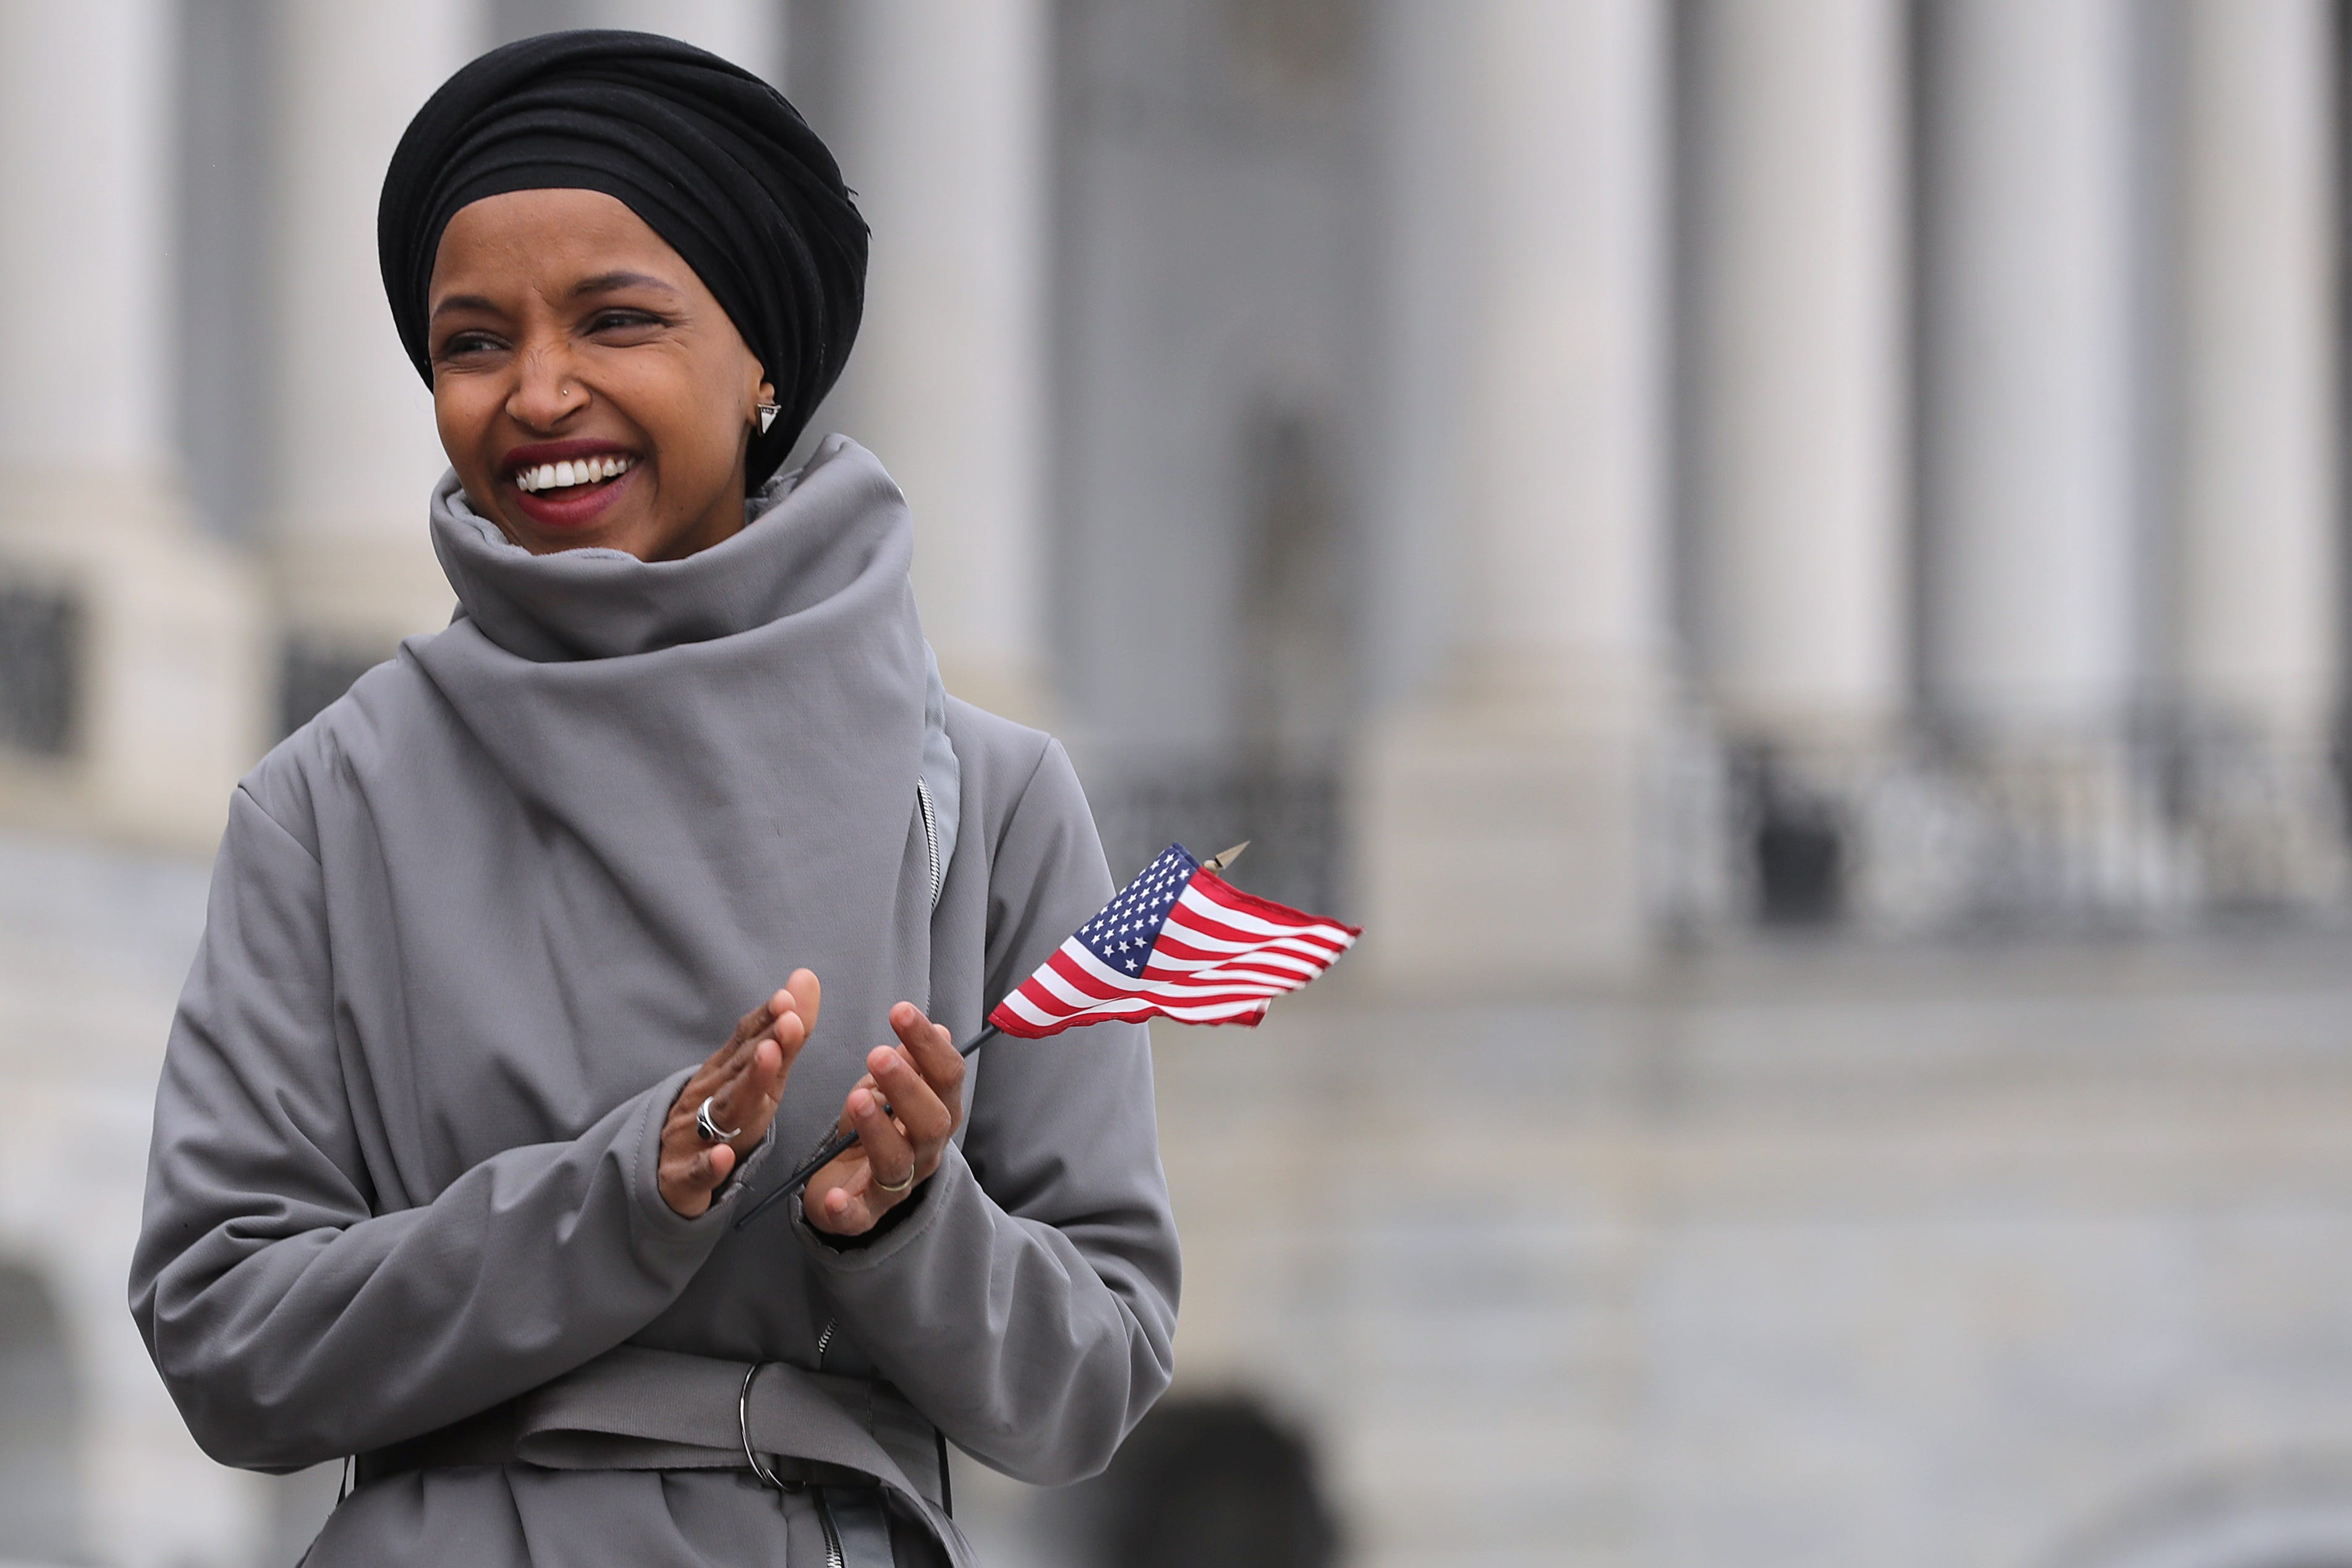 ilhan omar hijab comments by host jeanine pirro condemned